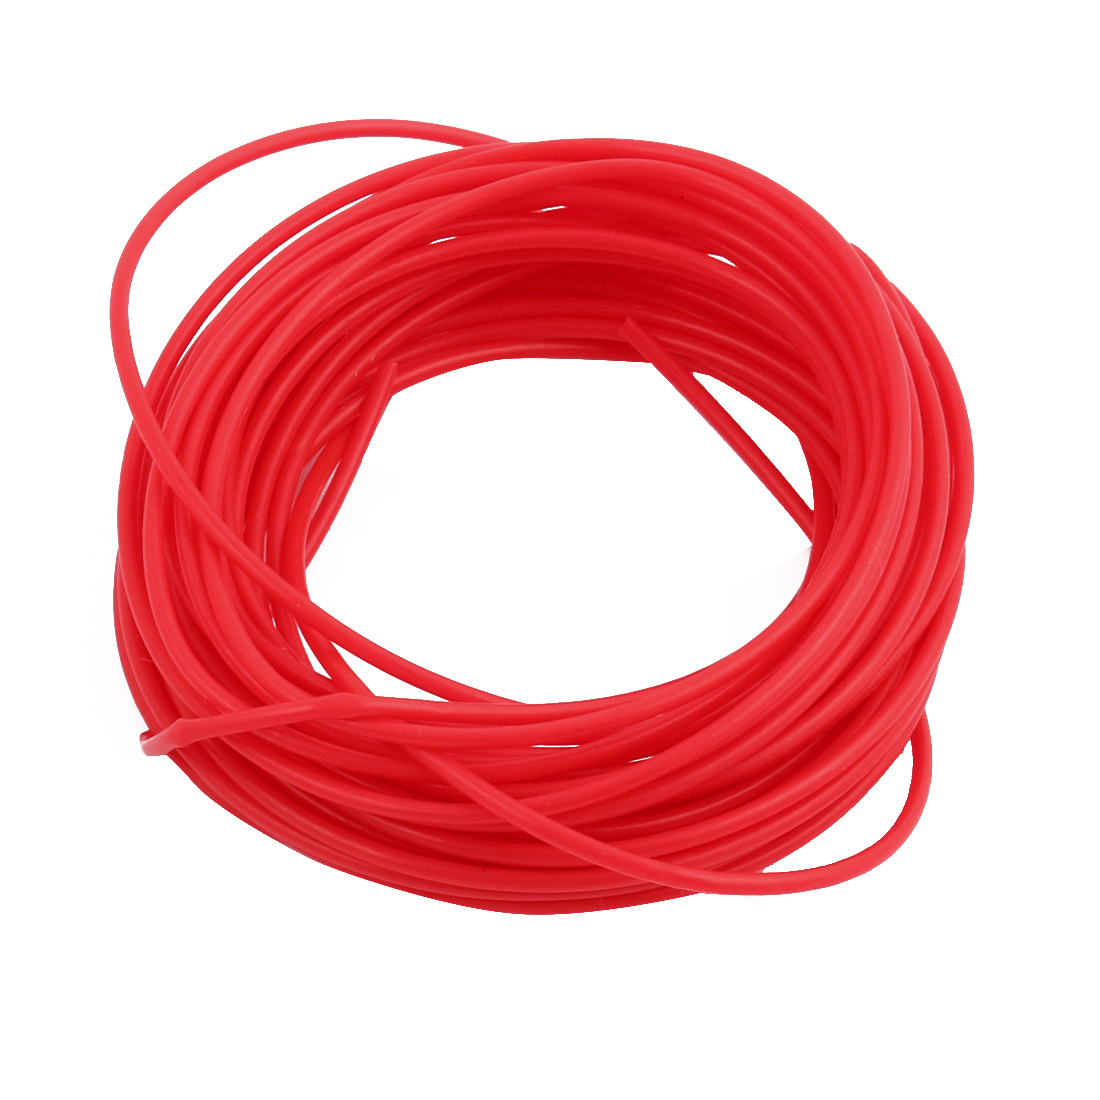 1.07mmx1.37mm PTFE Resistant High Temperature Red Tubing 10 Meters 32.8Ft